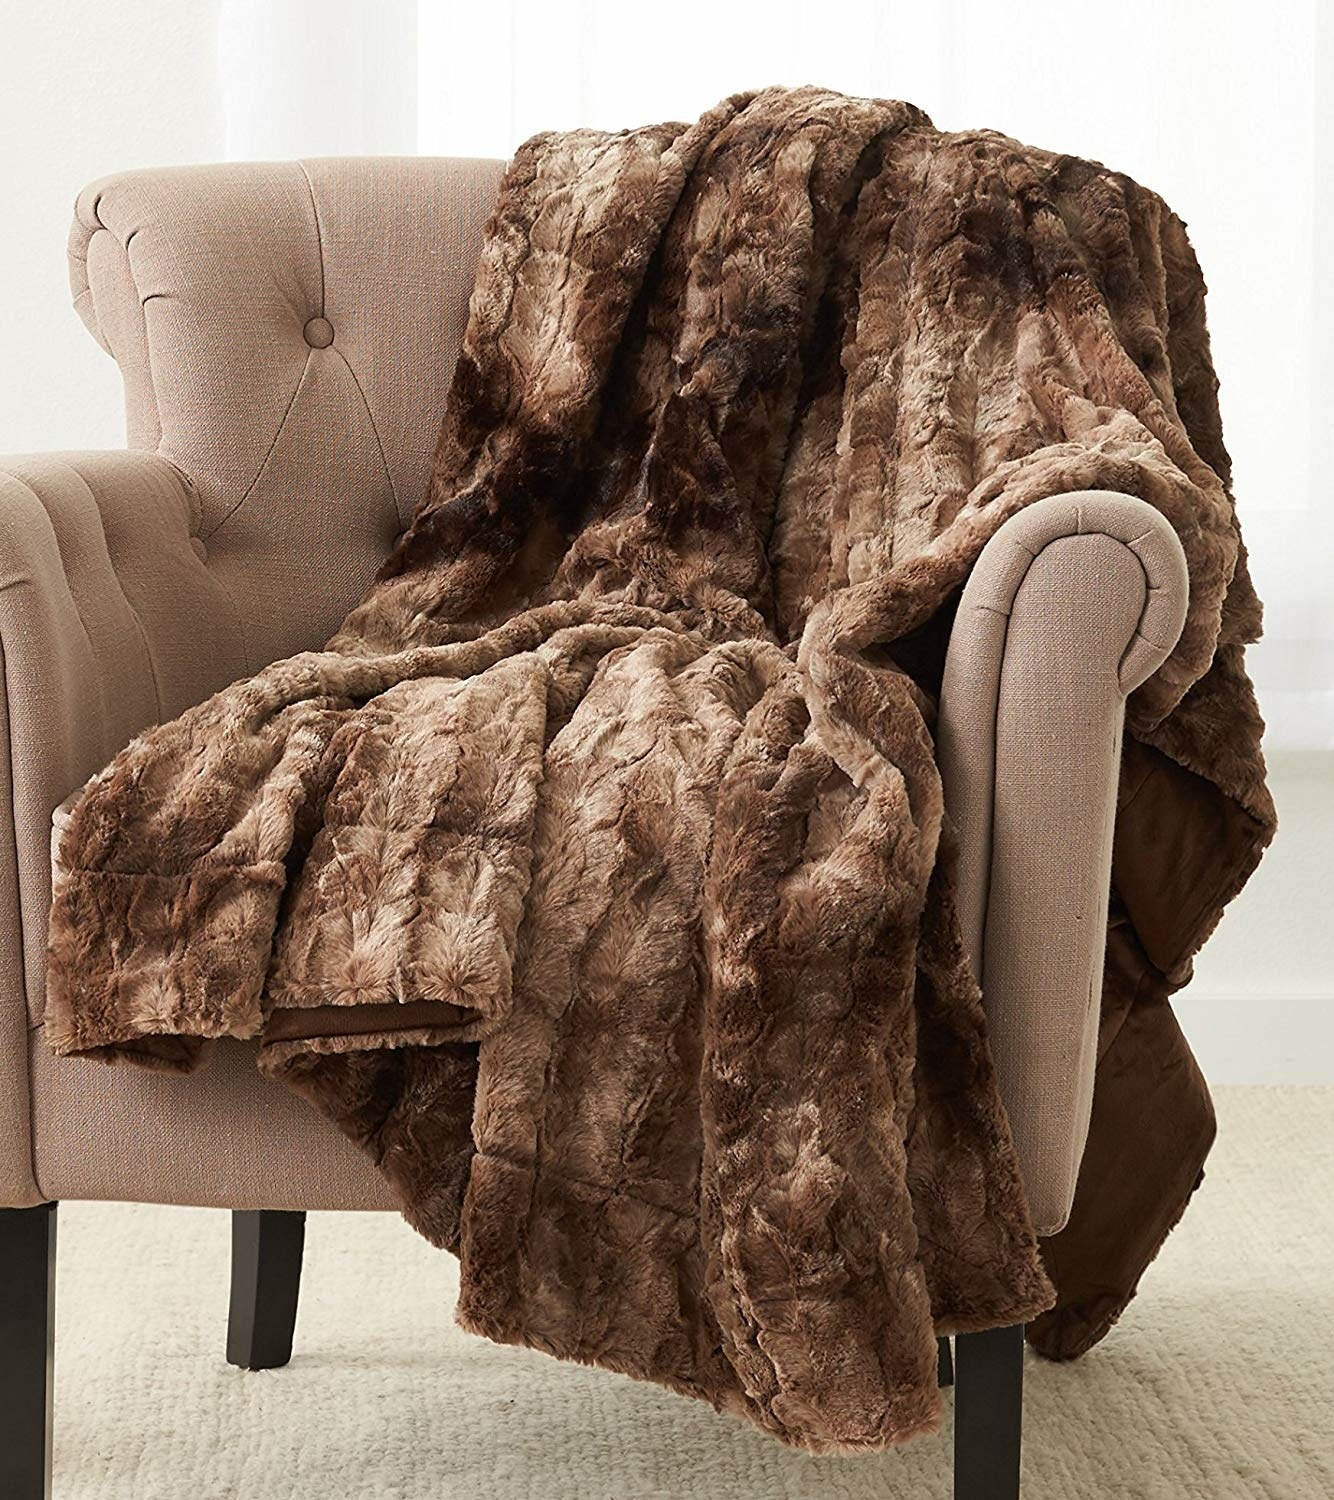 faux fur blanket thrown over a chair